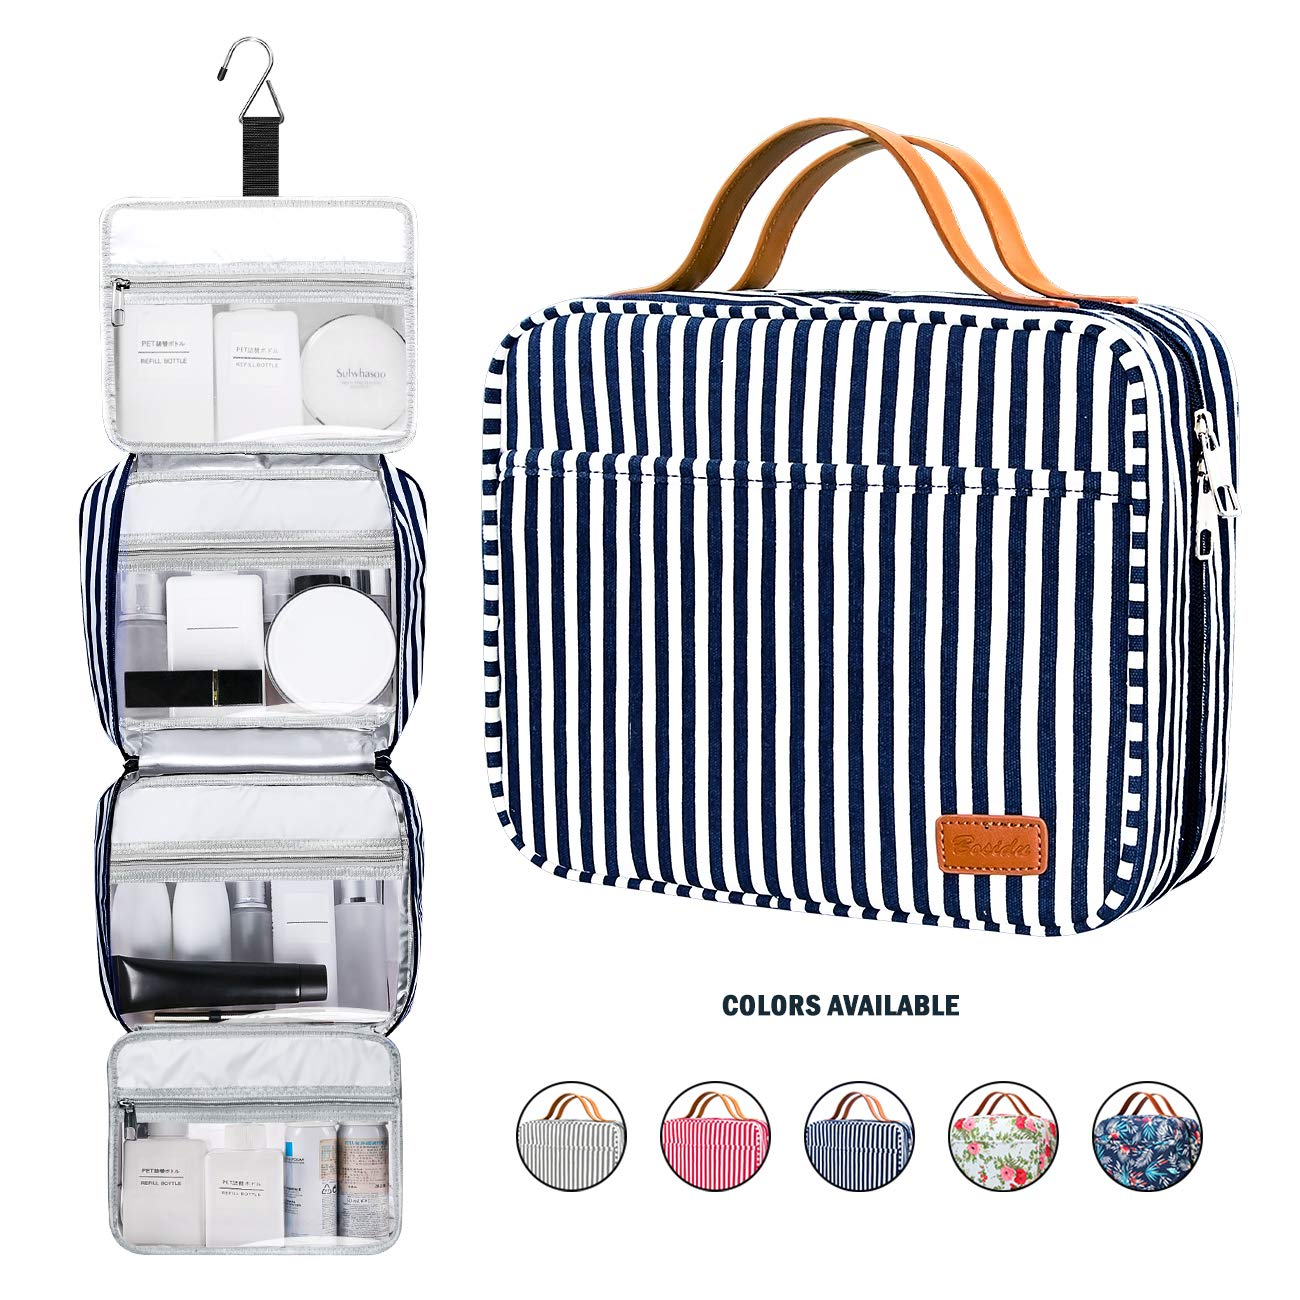 Hanging Travel Toiletry Bag,Large Capacity Cosmetic Toiletry Travel Organizer for Women/Men with 4 Compartments & 1 Sturdy Hook,Perfect for Travel/Daily Use (Navy Blue & White Striped) by Bosidu